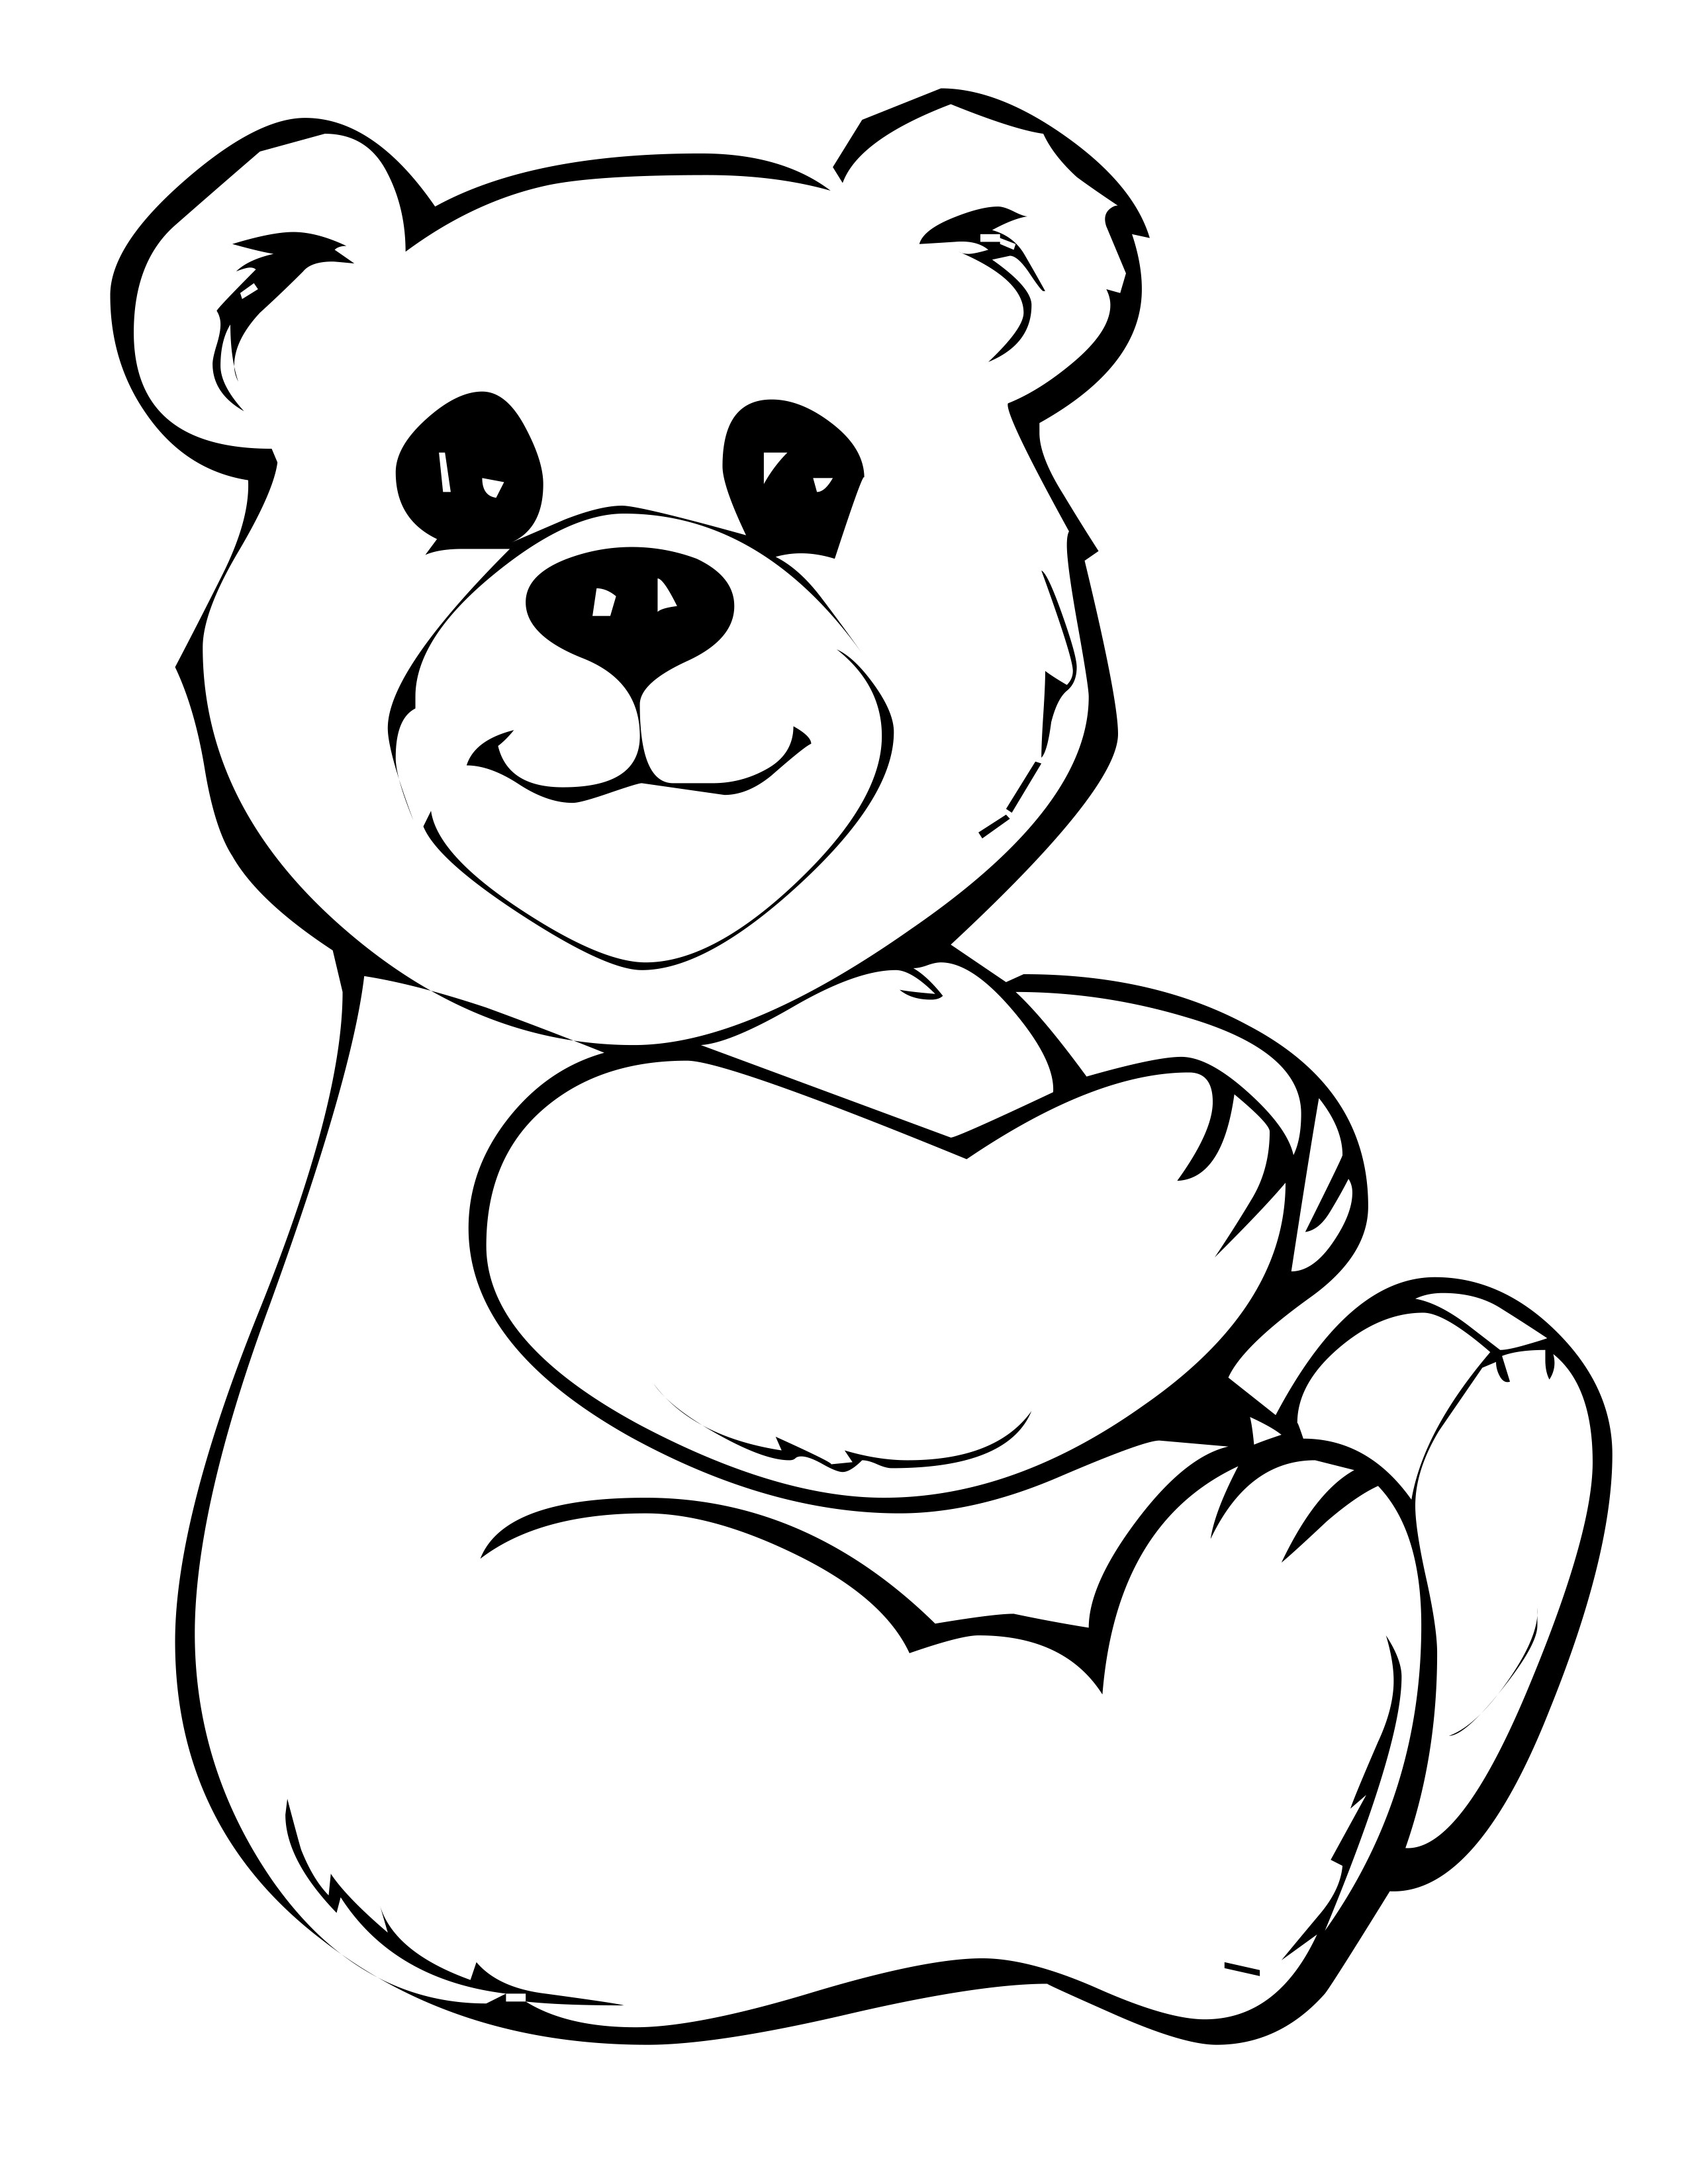 Teddy bear drawing images at getdrawings free for personal use 2550x3300 gallery bear teddy drawing altavistaventures Image collections